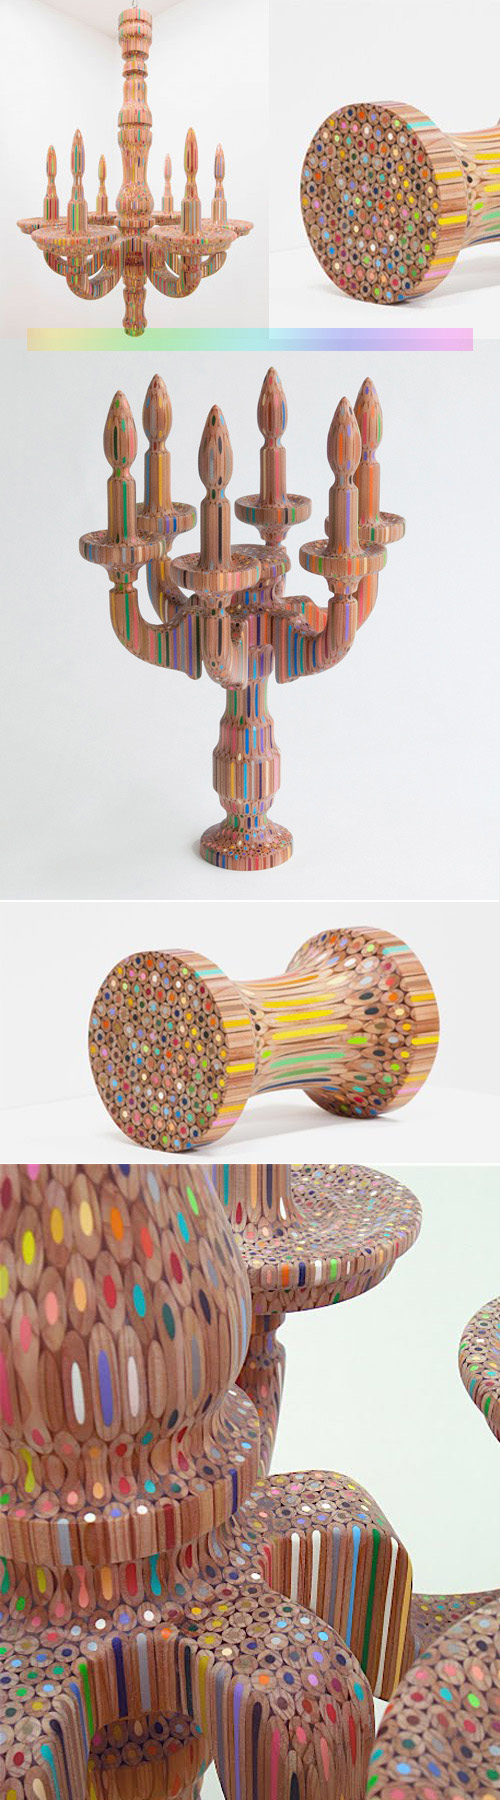 takafumi-yagi-colored-pencil-sculptures-1.jpg